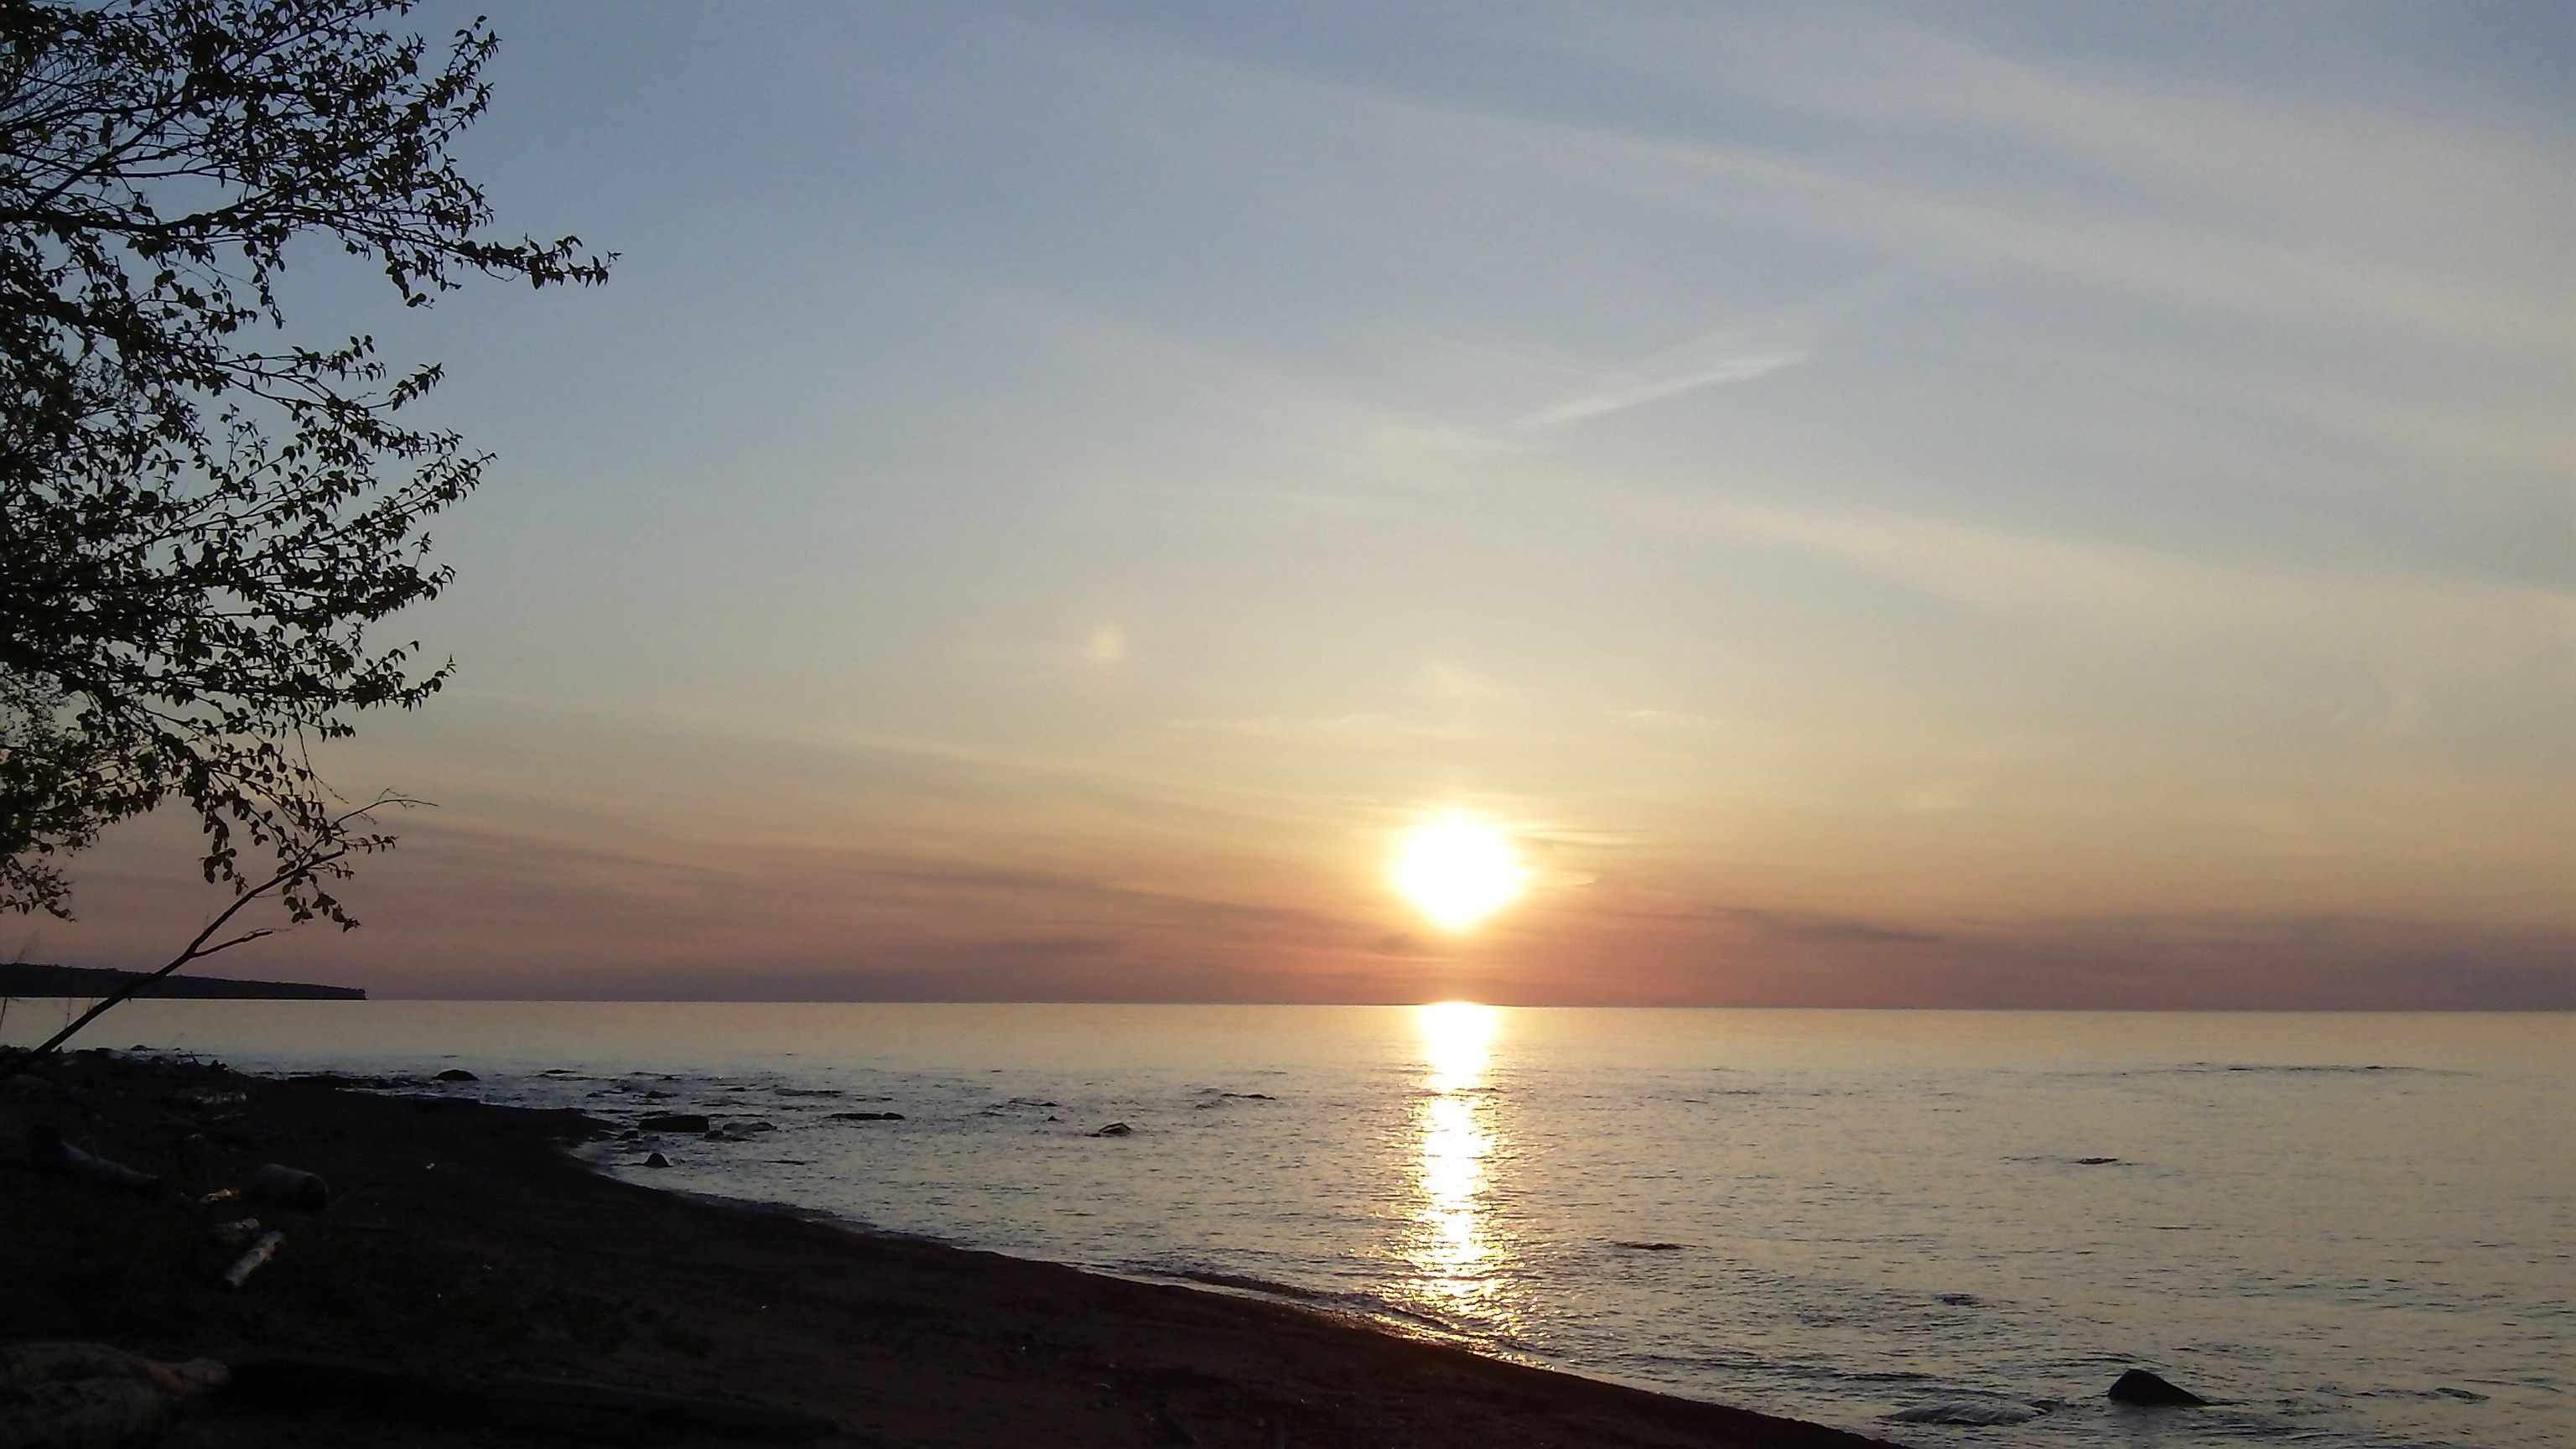 Another sunset on the beach